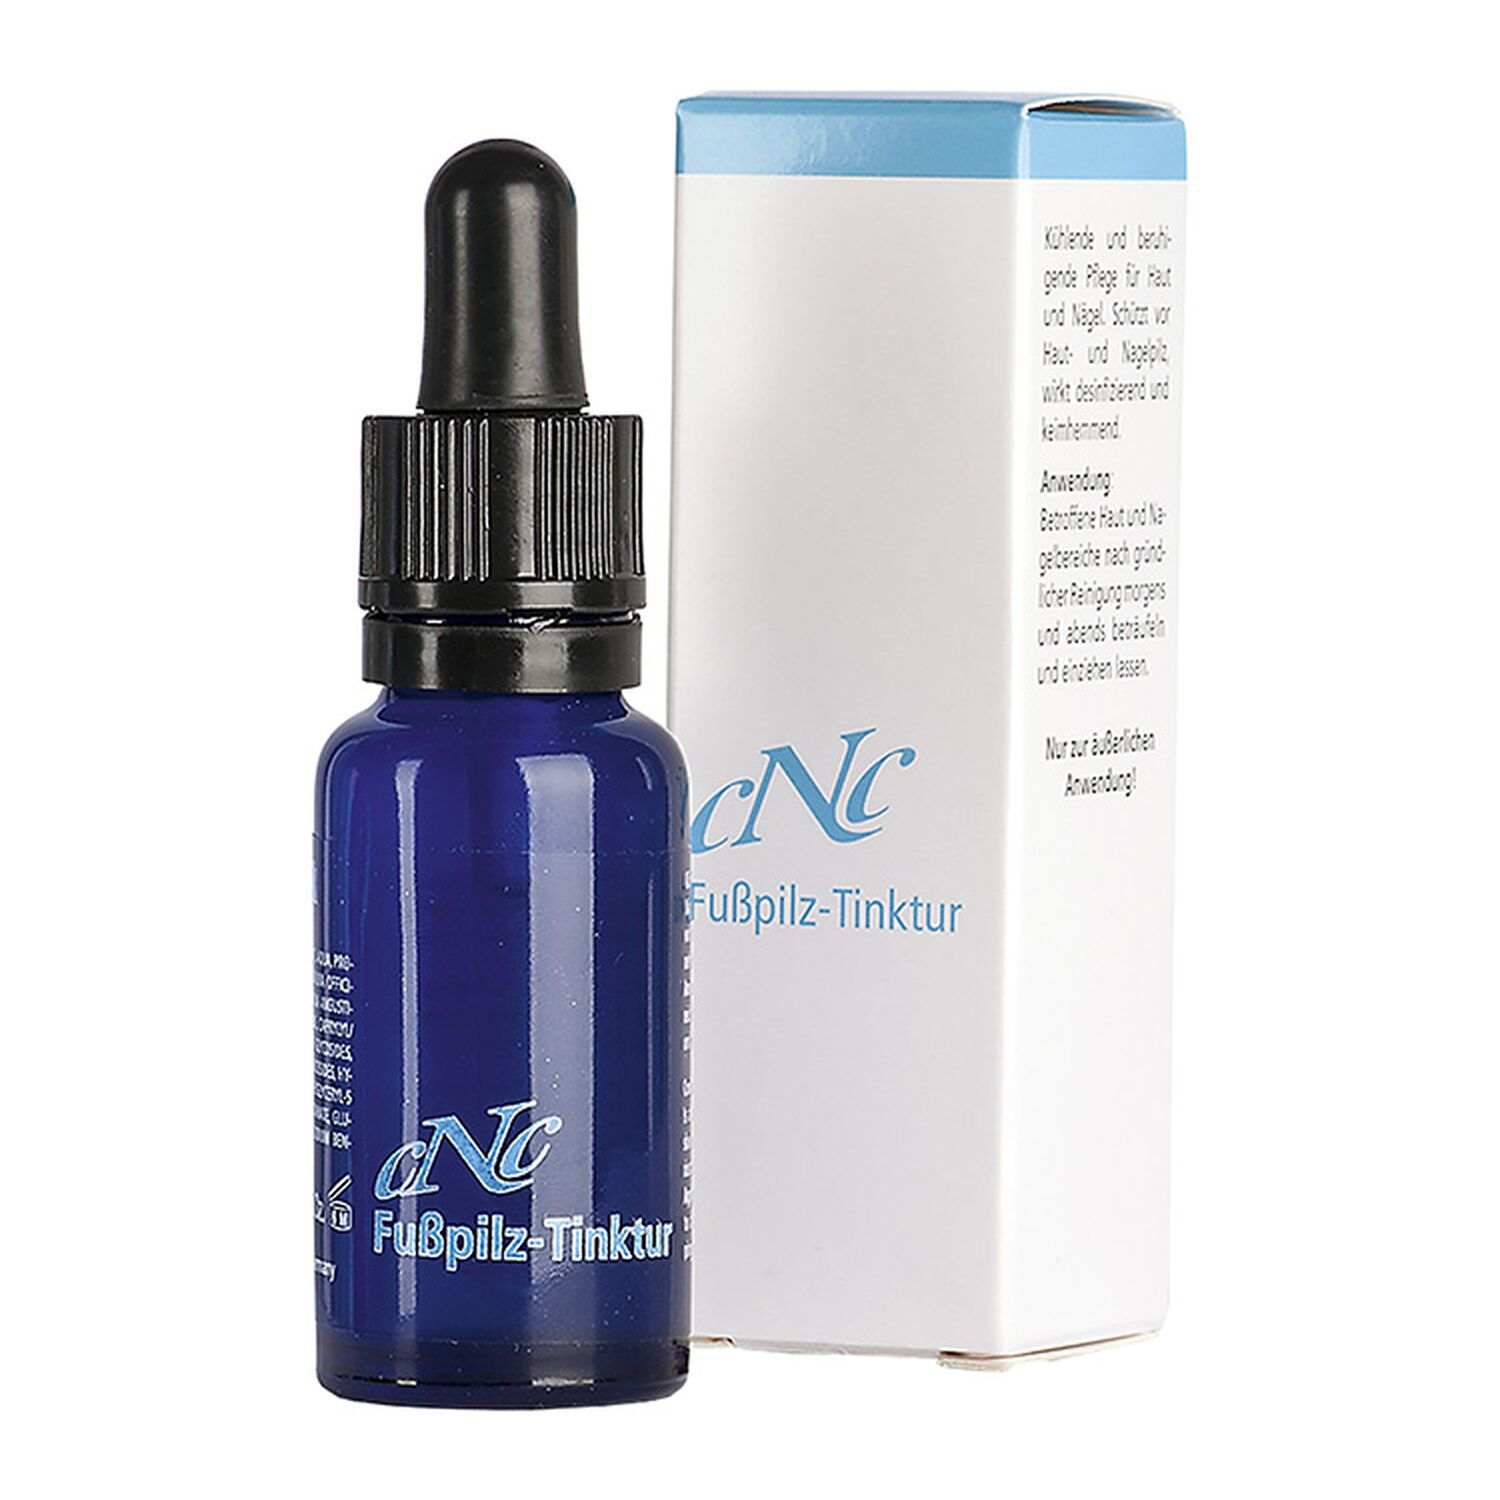 CNC Cosmetic - Fusspilz-Tinktur 20ml - Menthol, Salbei 106006